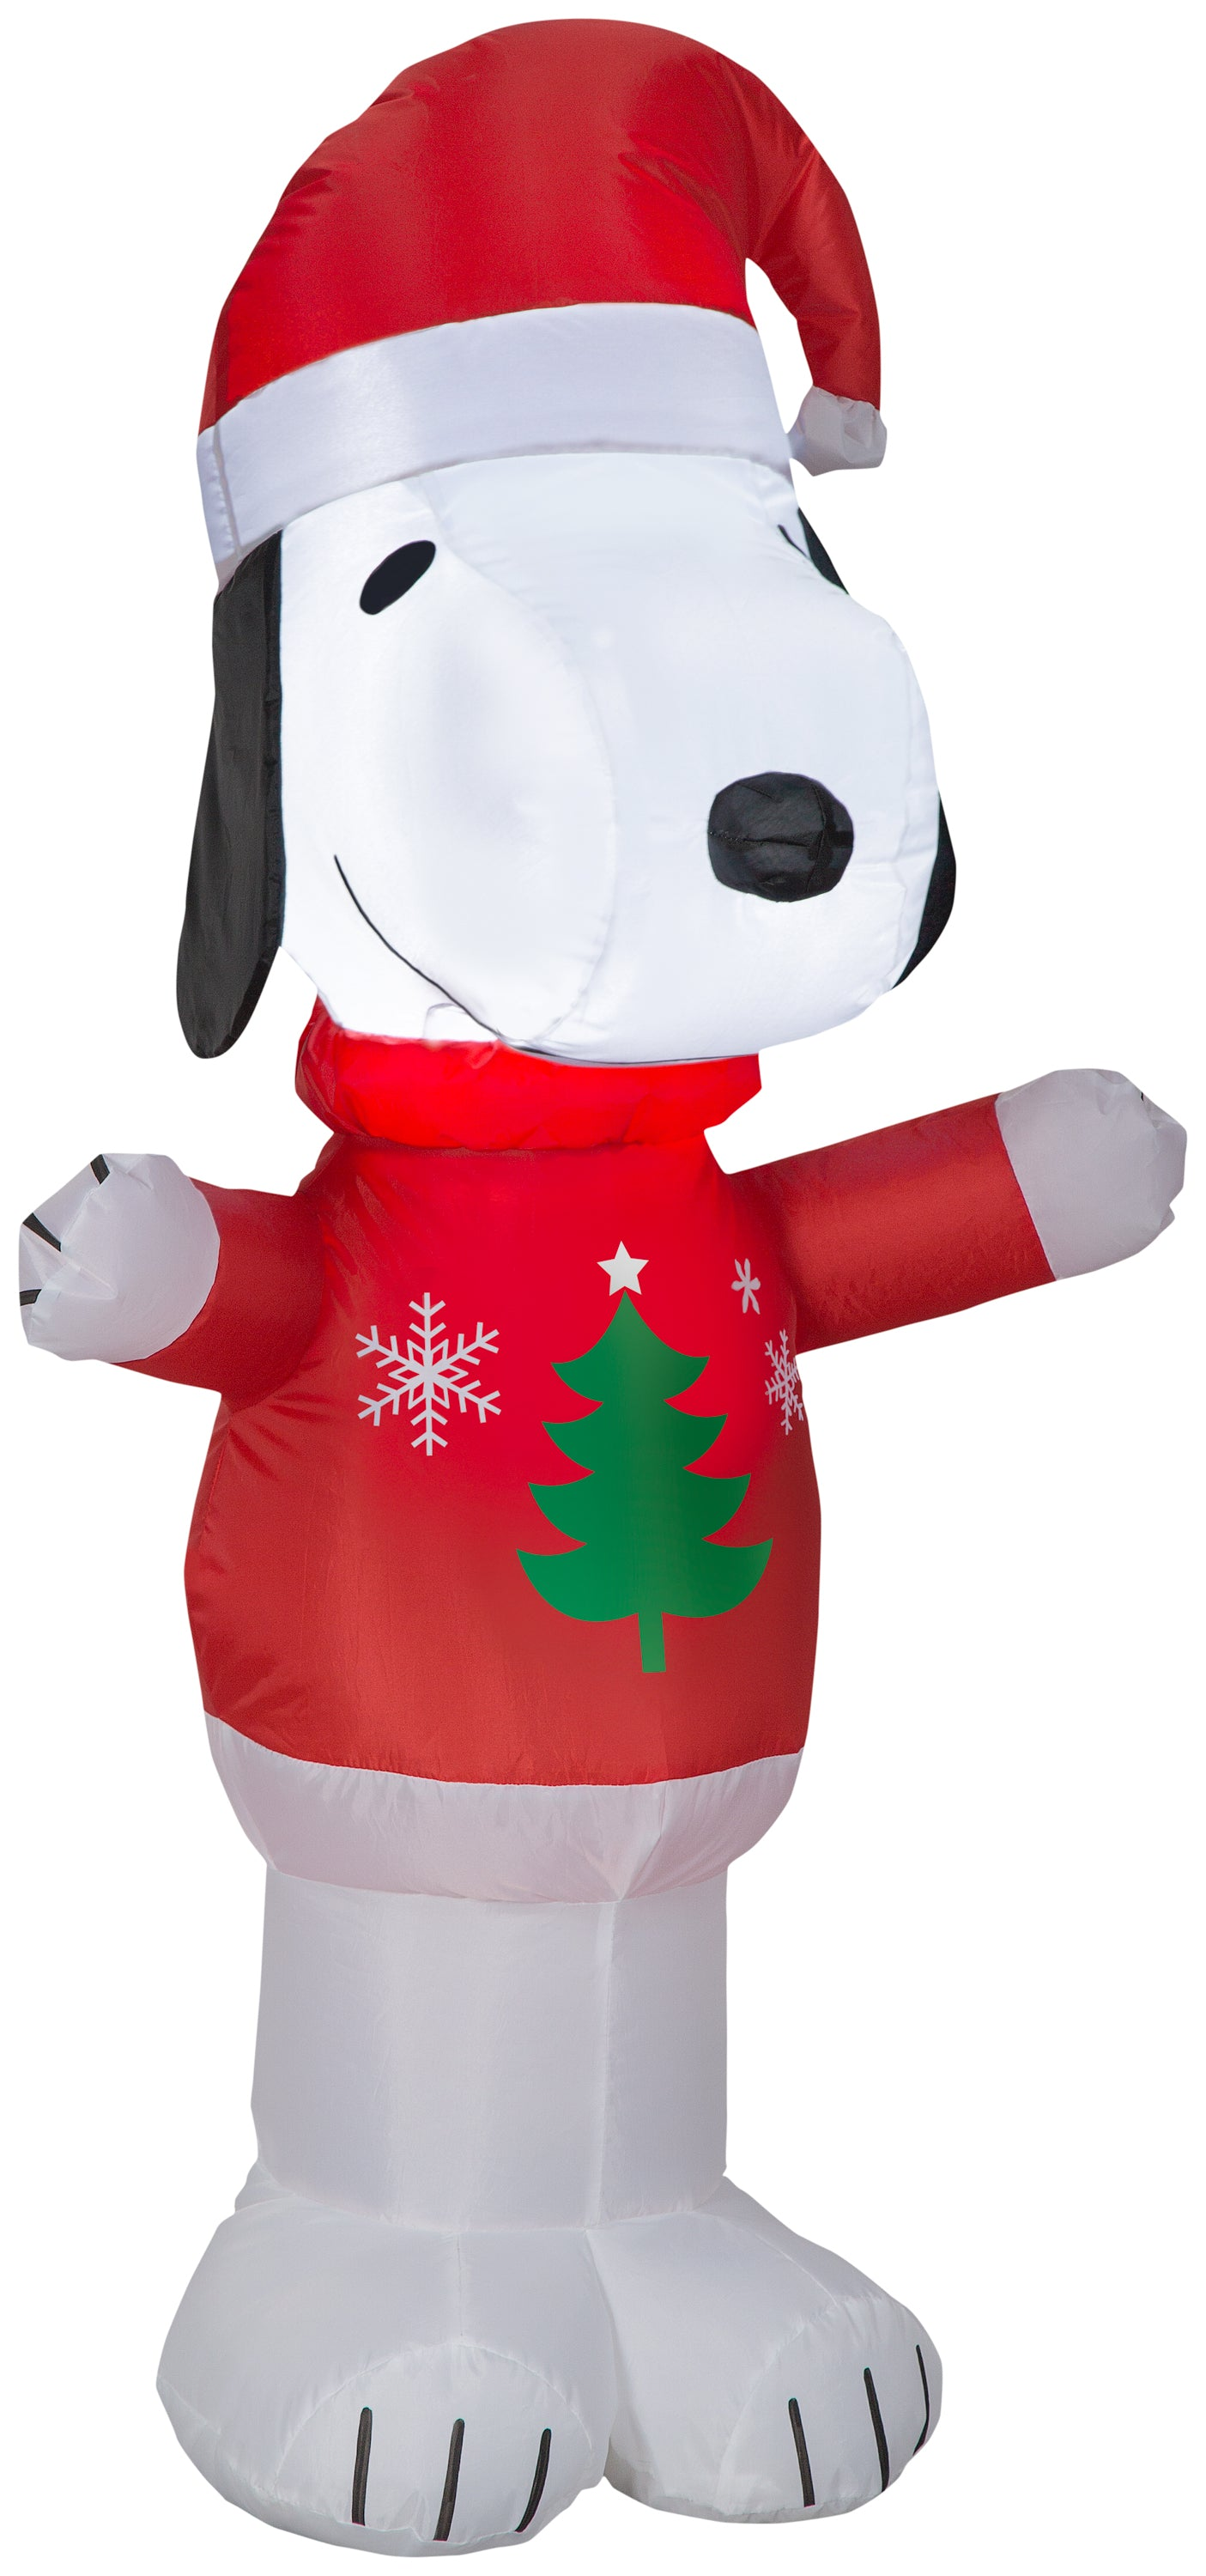 3.5' Airblown Snoopy in Christmas Tree Sweater Peanuts Christmas Inflatable